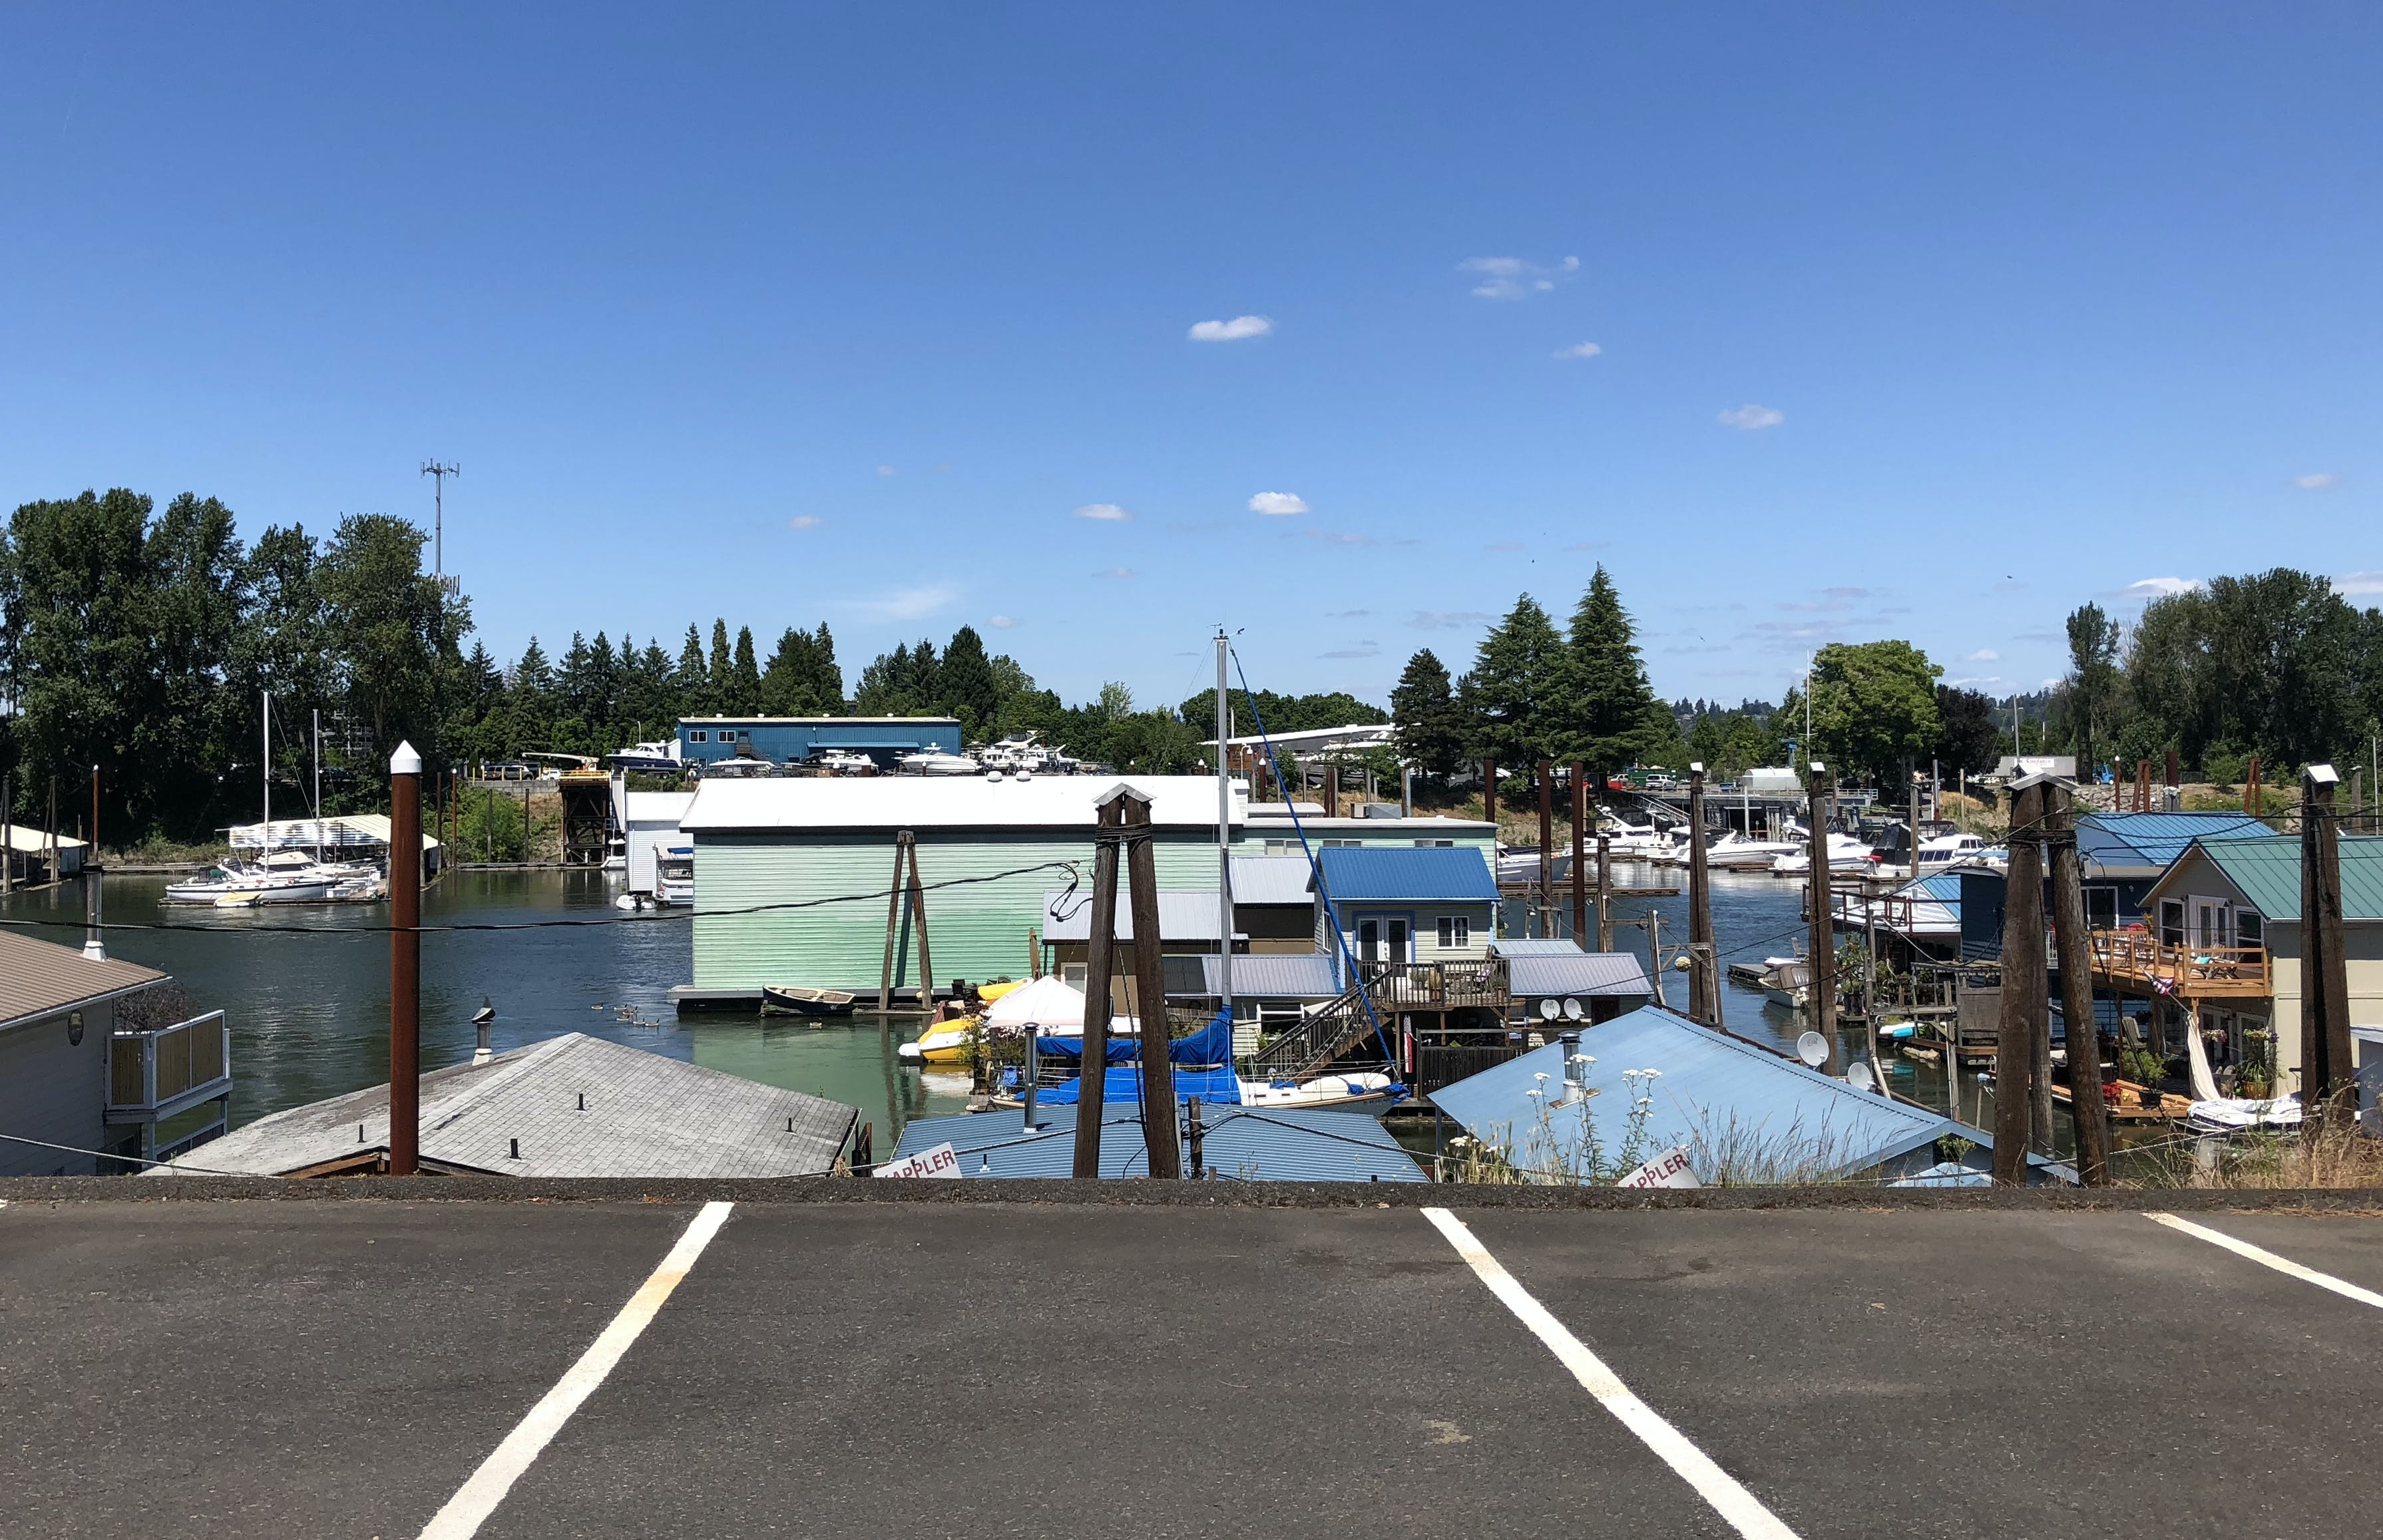 Columbia River Rv Park, OR | The Dyrt